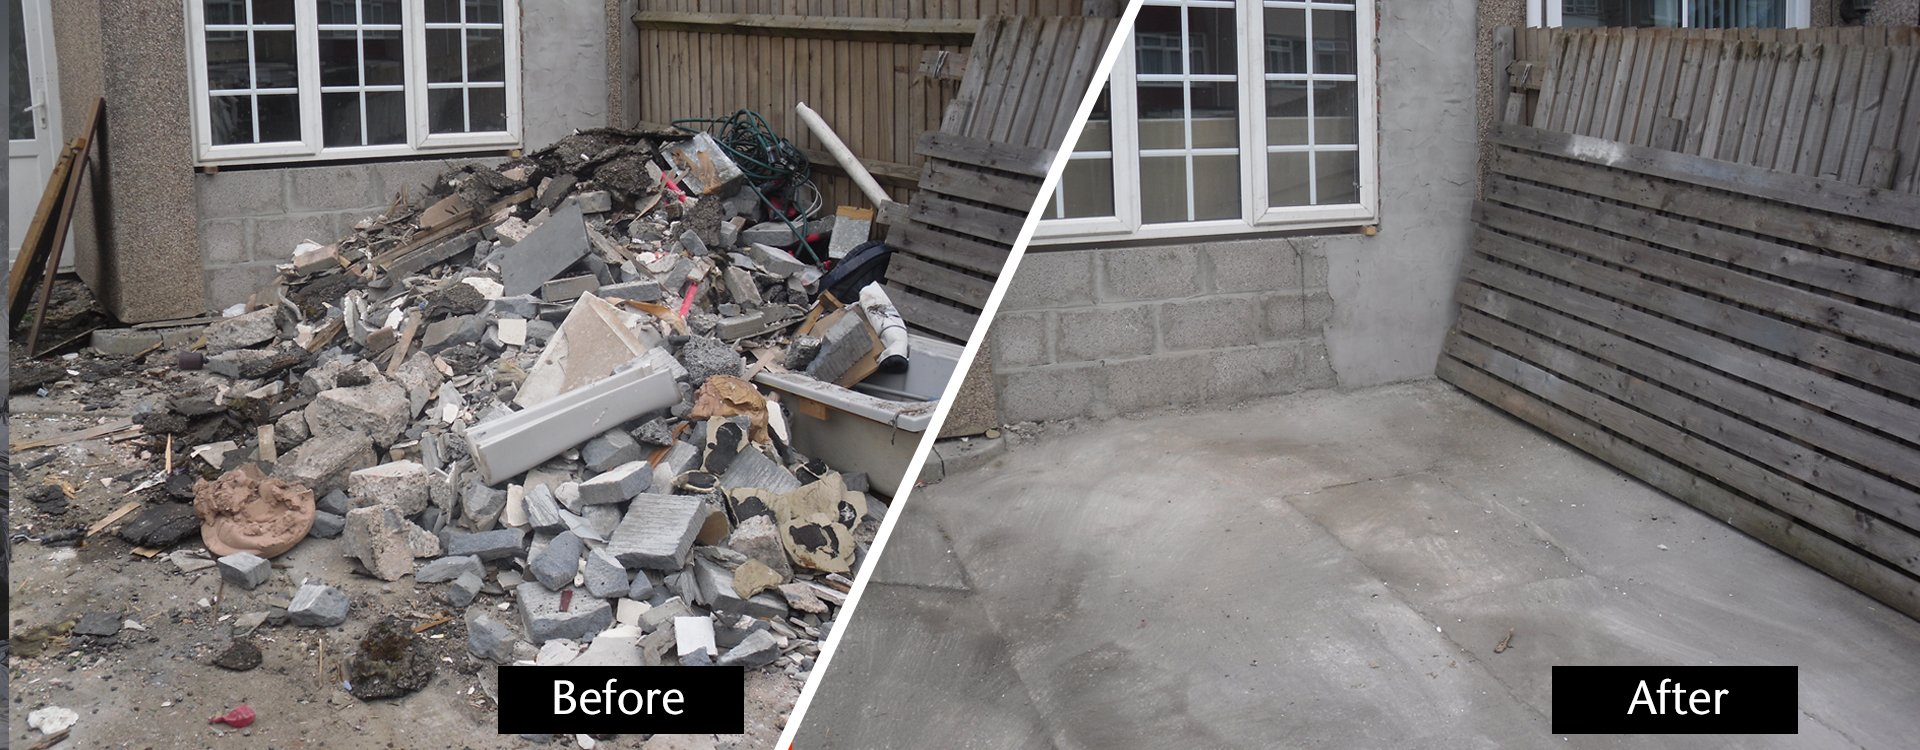 rubbish before and after removal